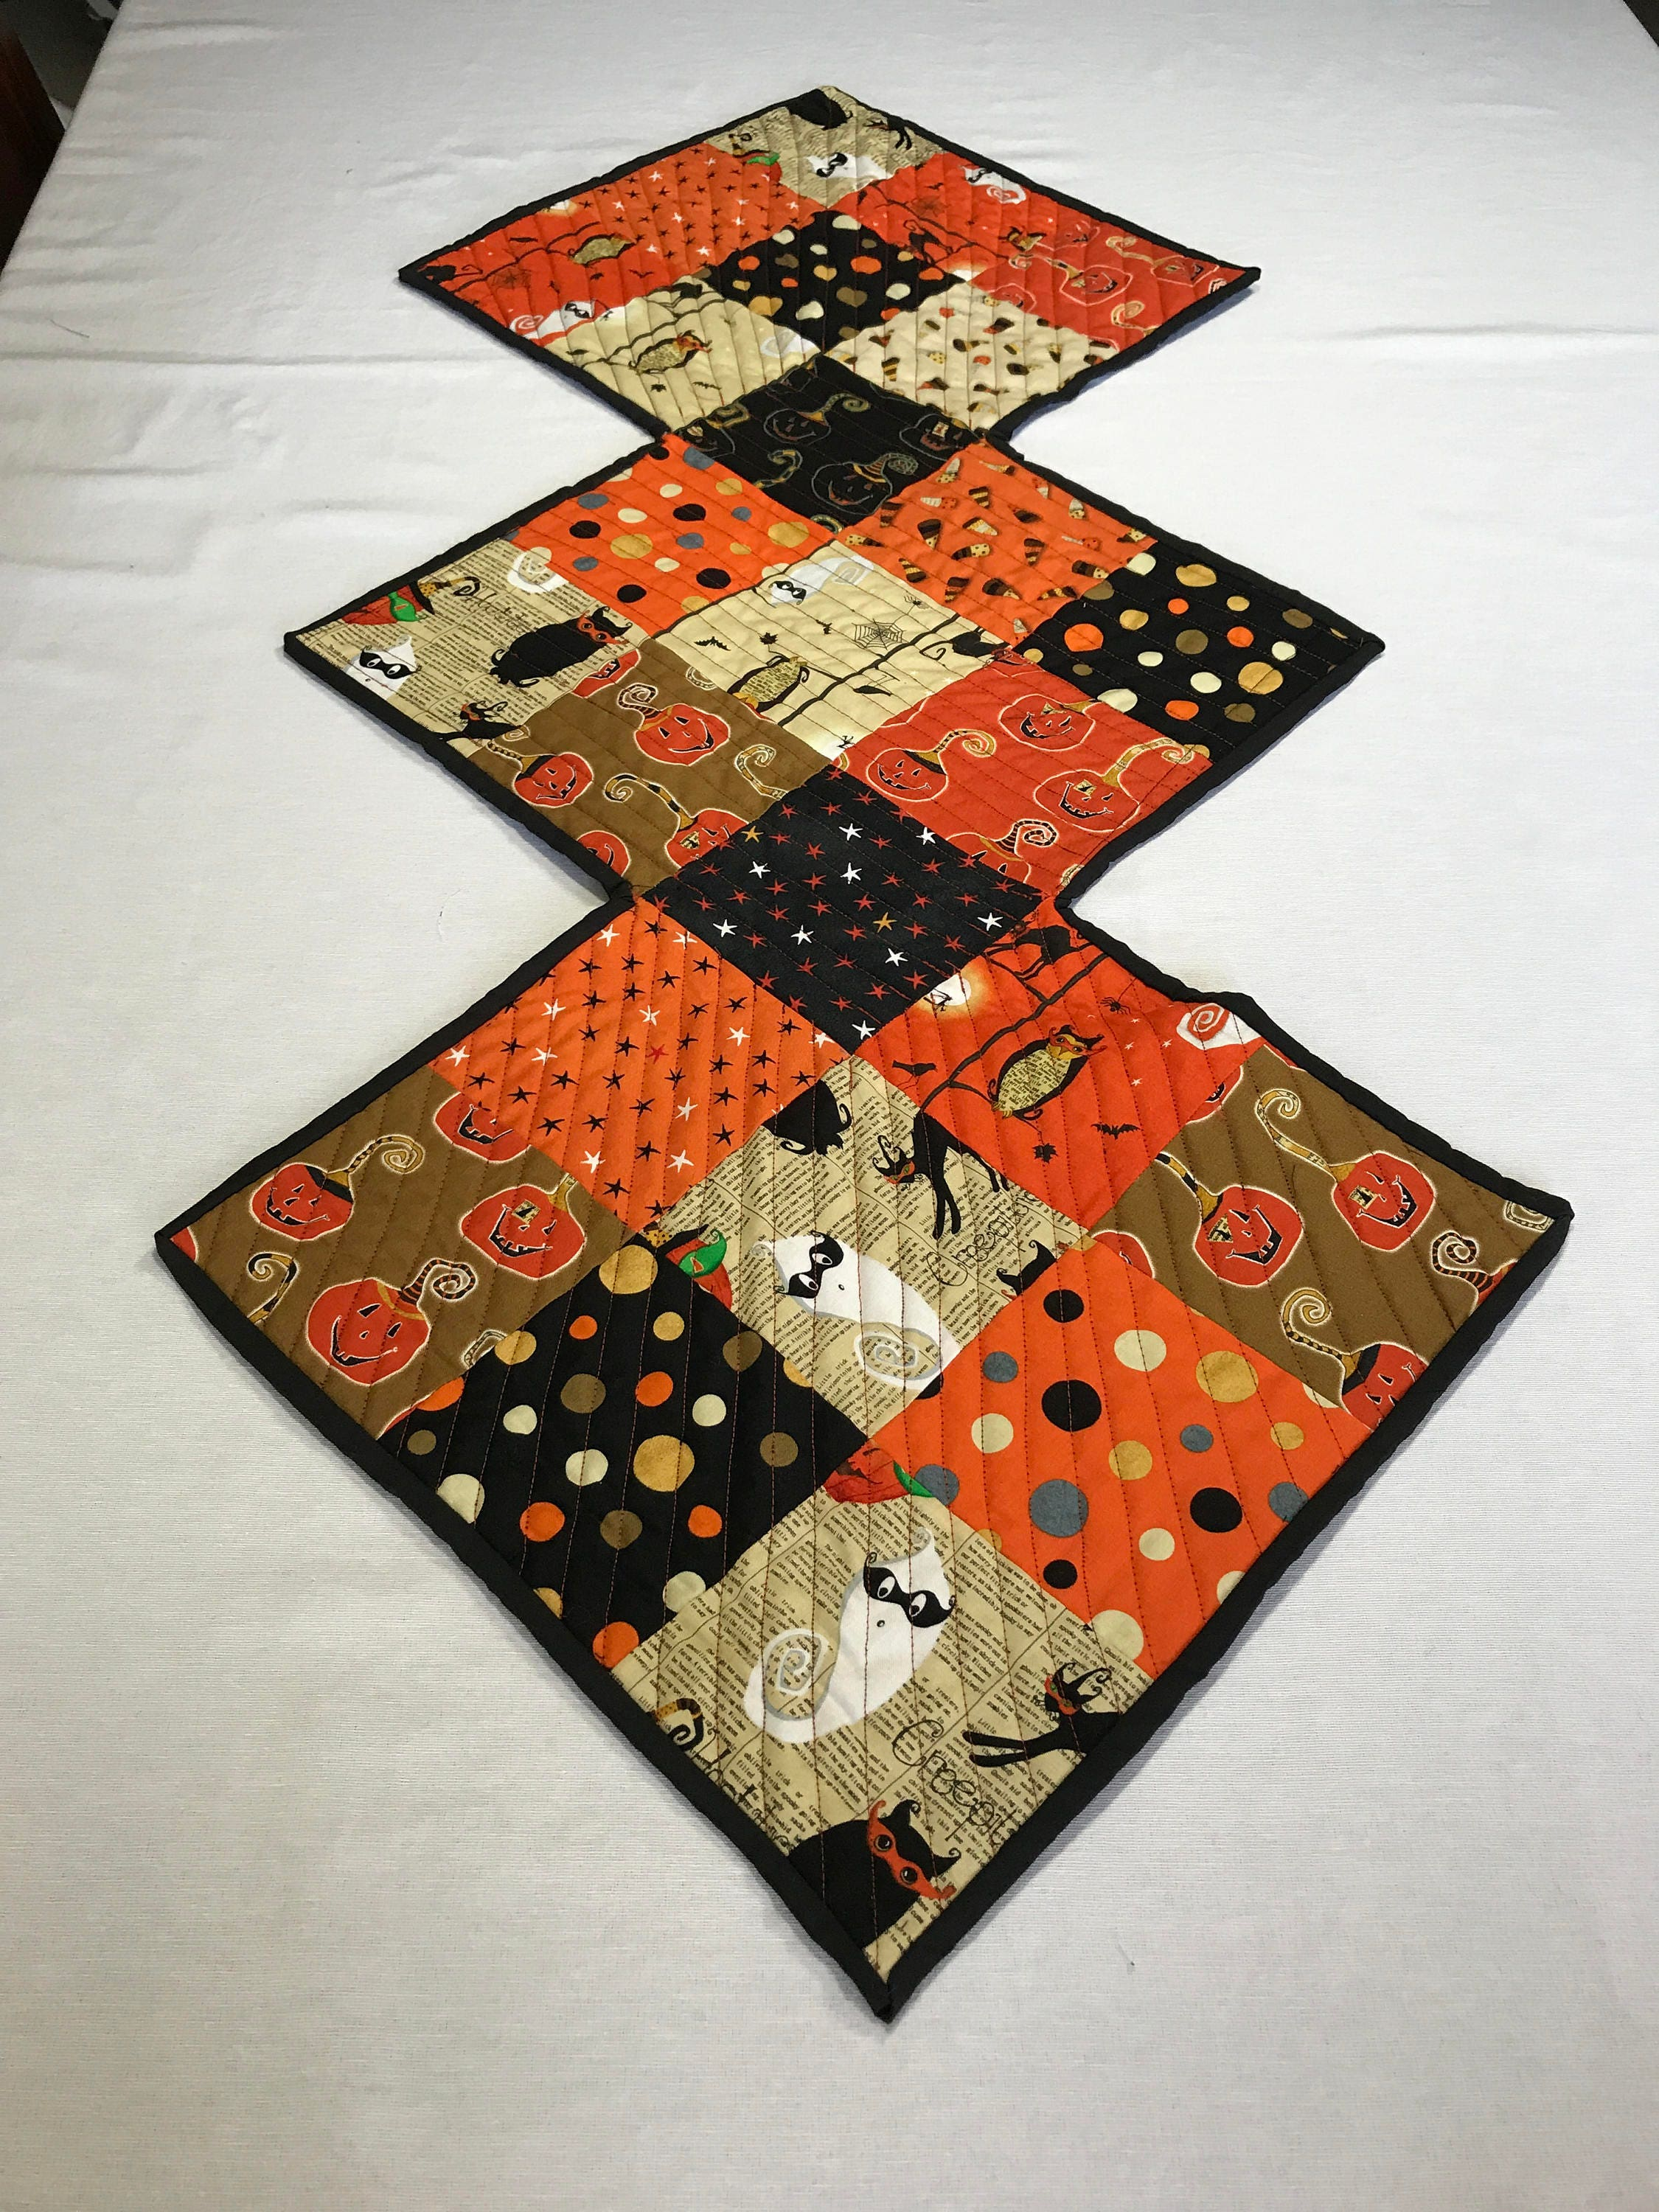 quilted halloween table runners halloween table runner quilted orange table runner halloween decor halloween party decor table cover